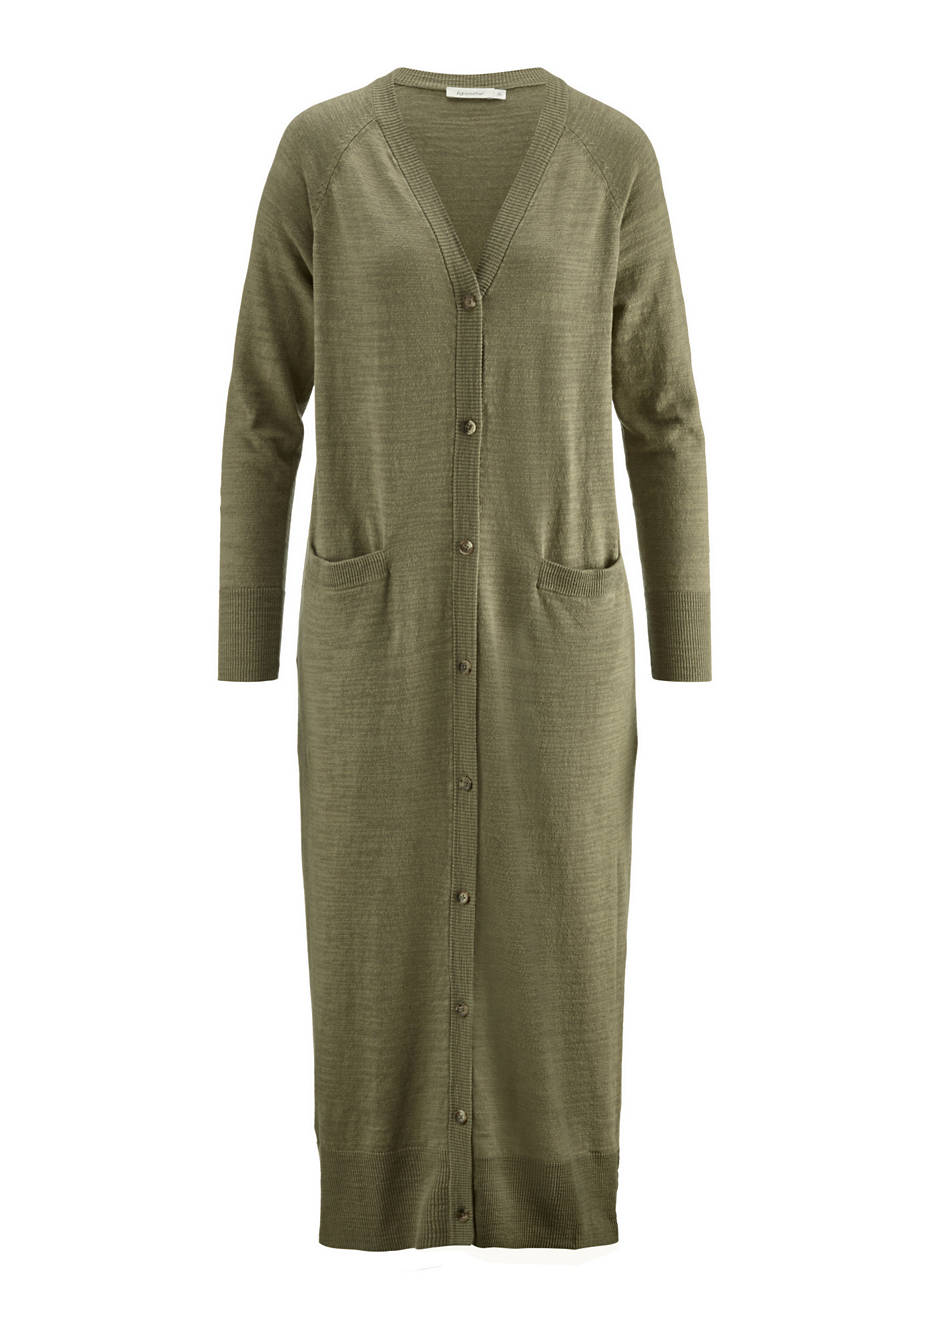 Linen knitted coat with organic cotton